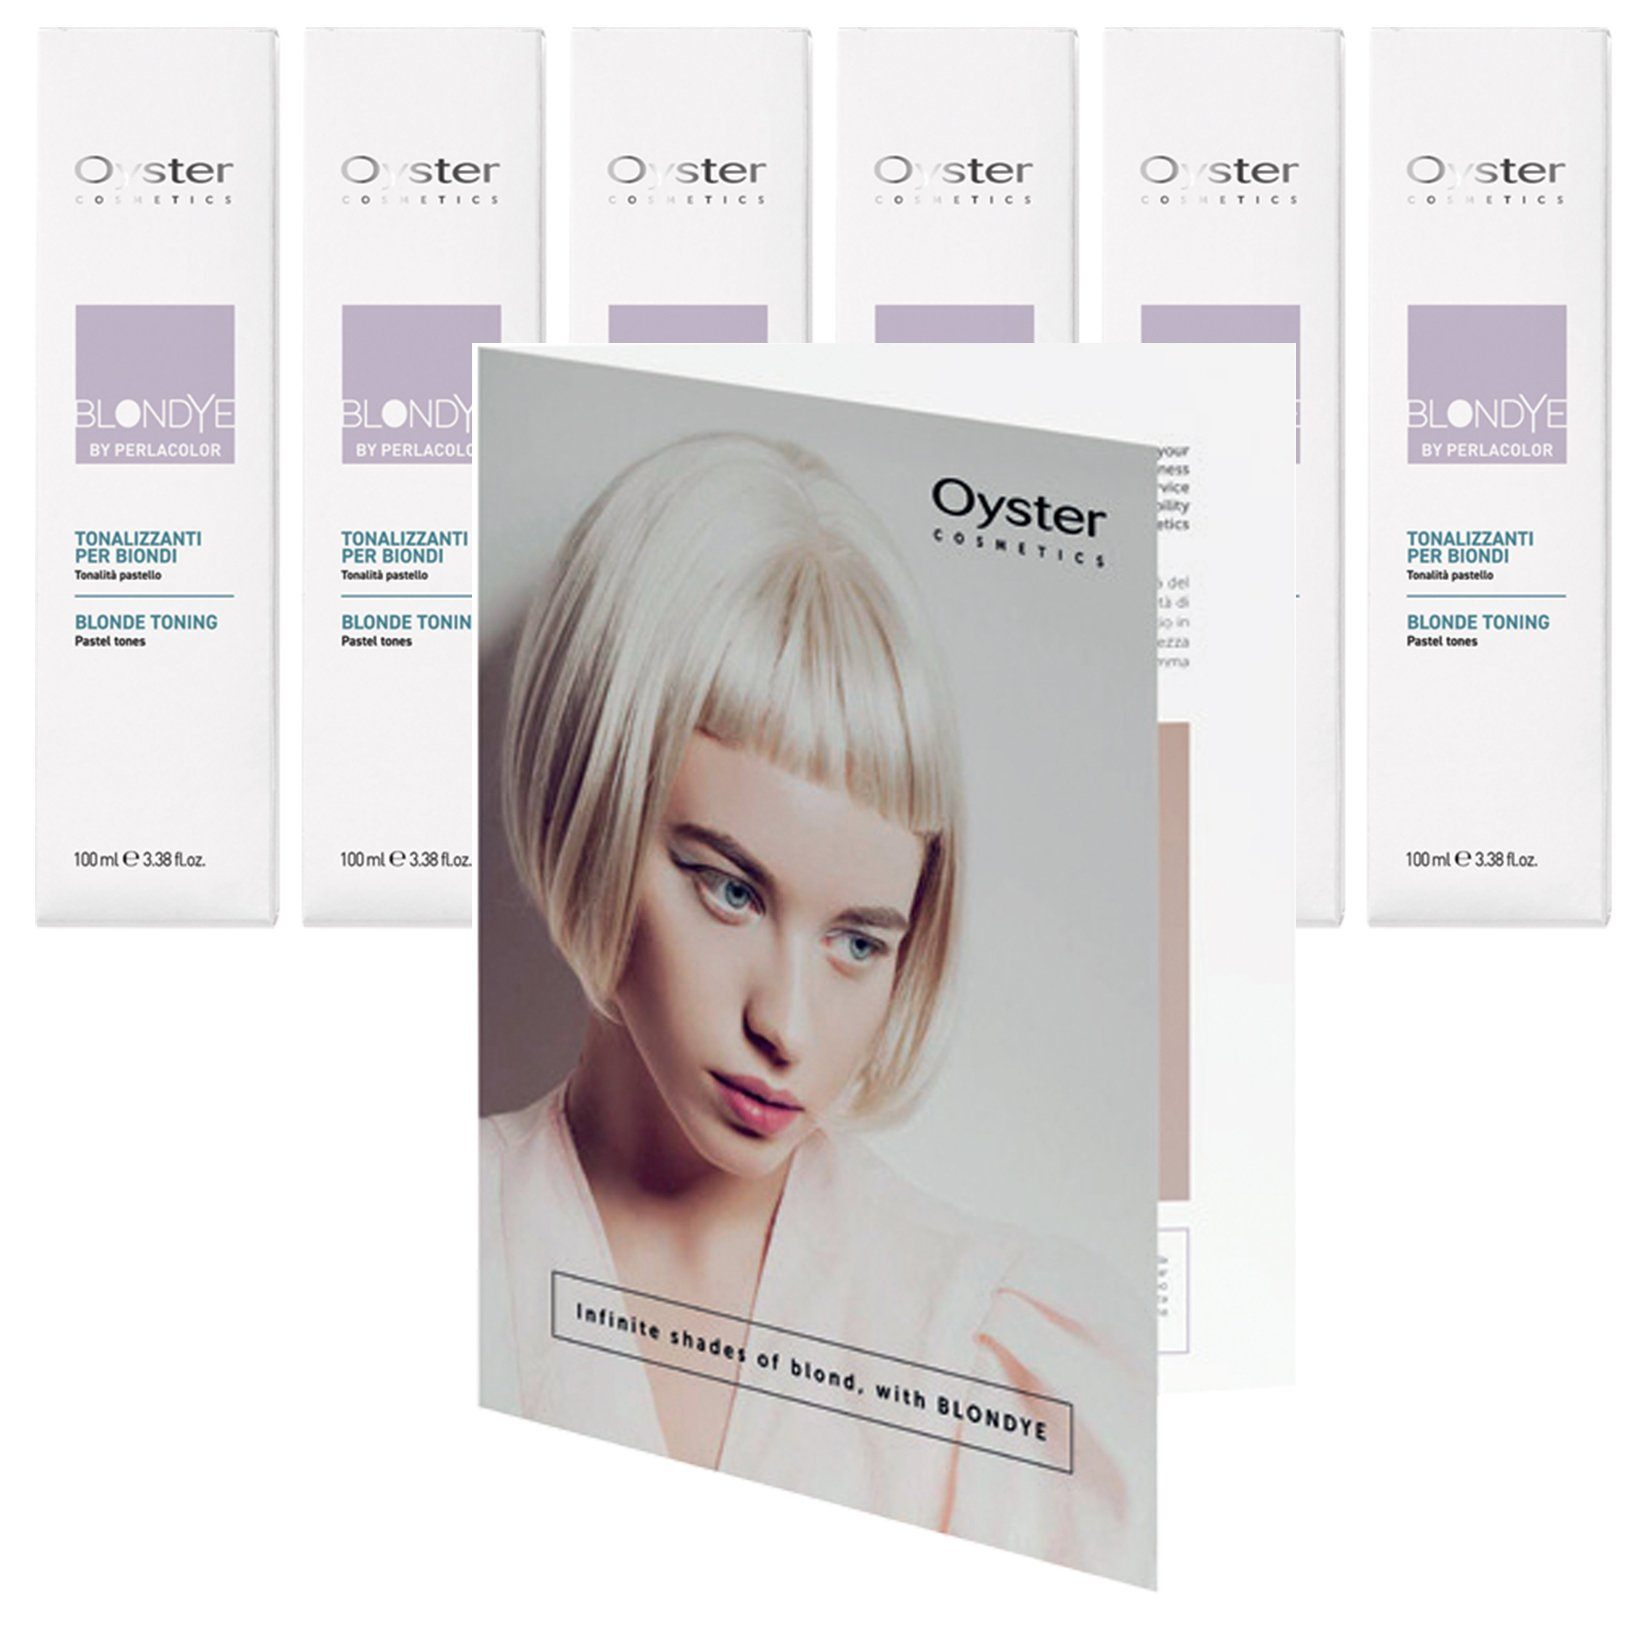 Blondye Special HAIR COLOR OYSTER with Blondye Color Book